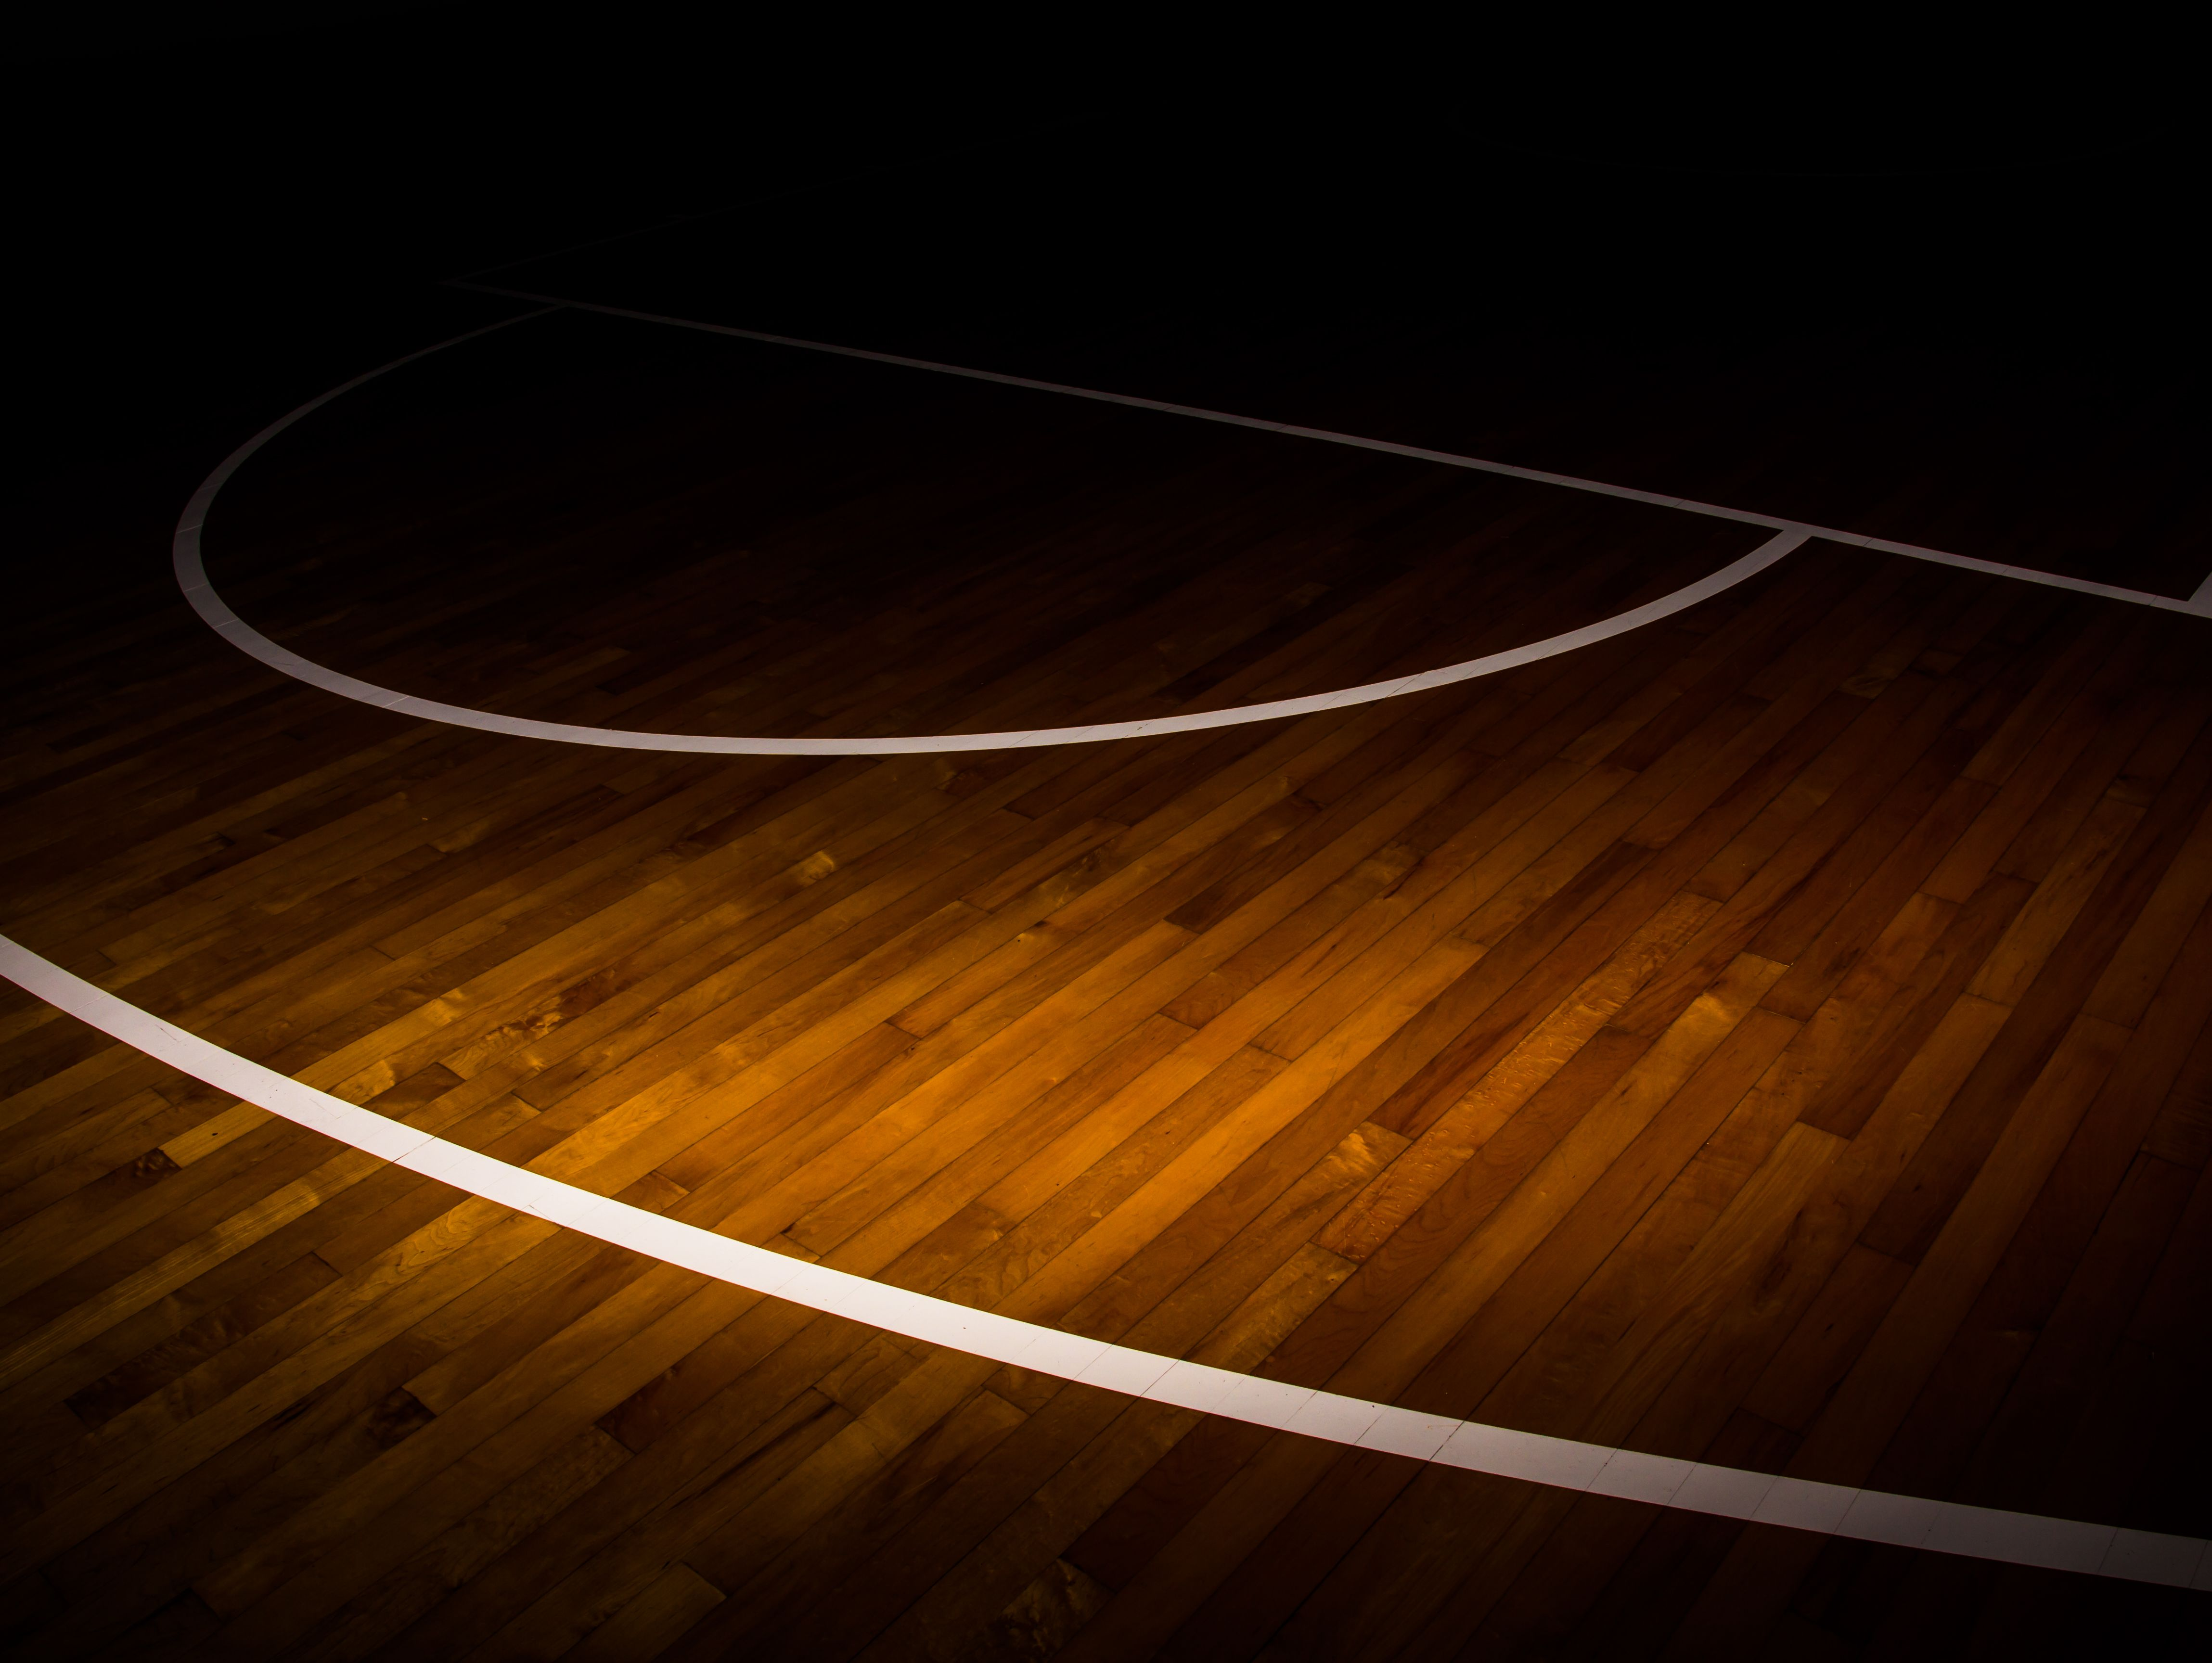 A conflict erupted at a basketball game at American Leadership Academy's Queen Creek campus.